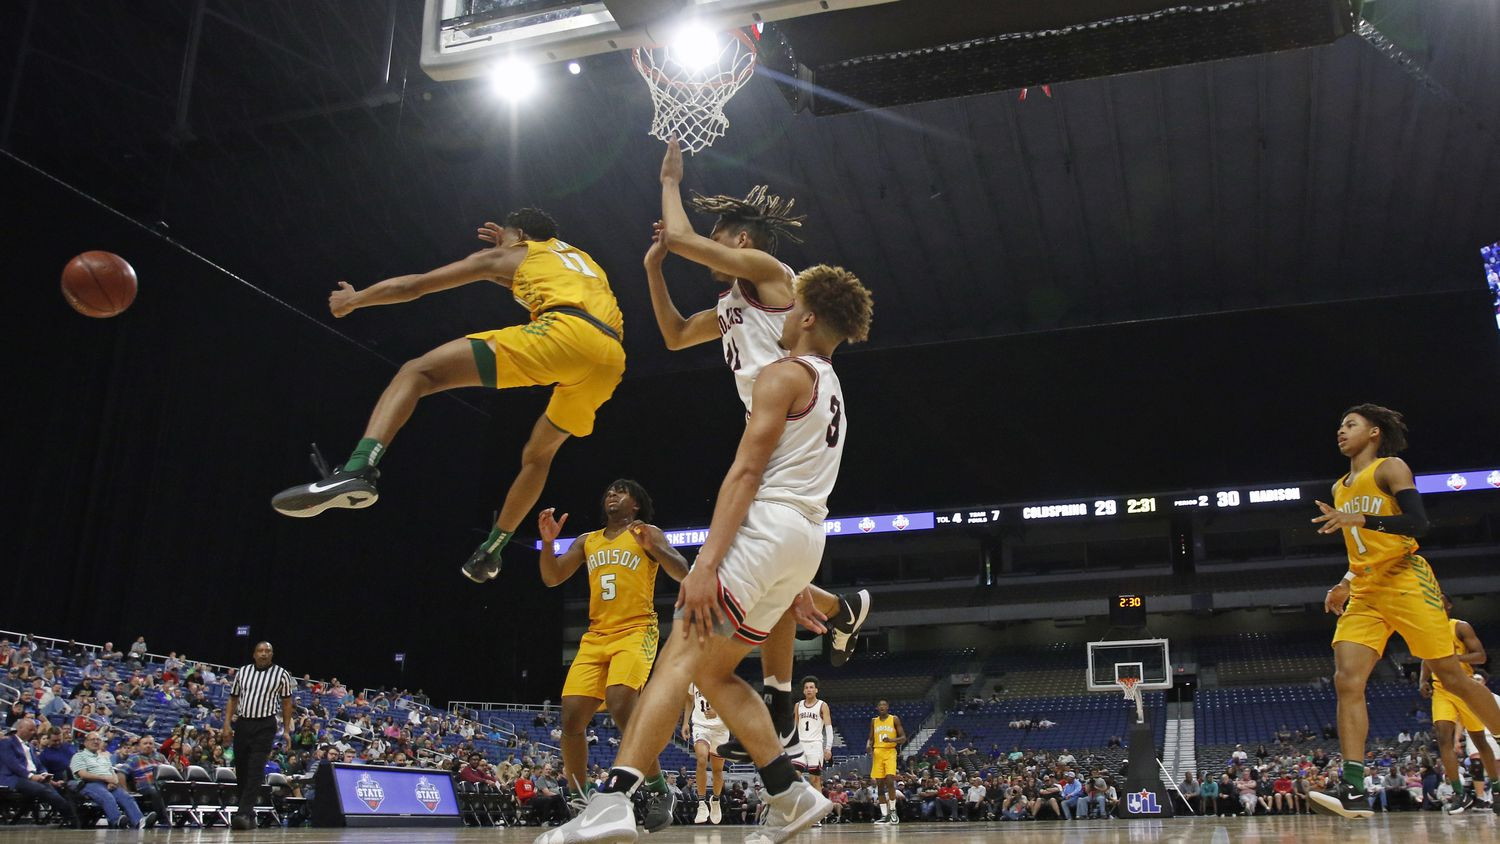 FILE - Madison guard Jerome Rogers Jr. (11) makes a pass after driving the lane. Madison defeated Coldspring-Oakhurst 90-73 in a Class 3A semifinal game on Thursday, March 12, 2020, at the Alamodome in San Antonio.